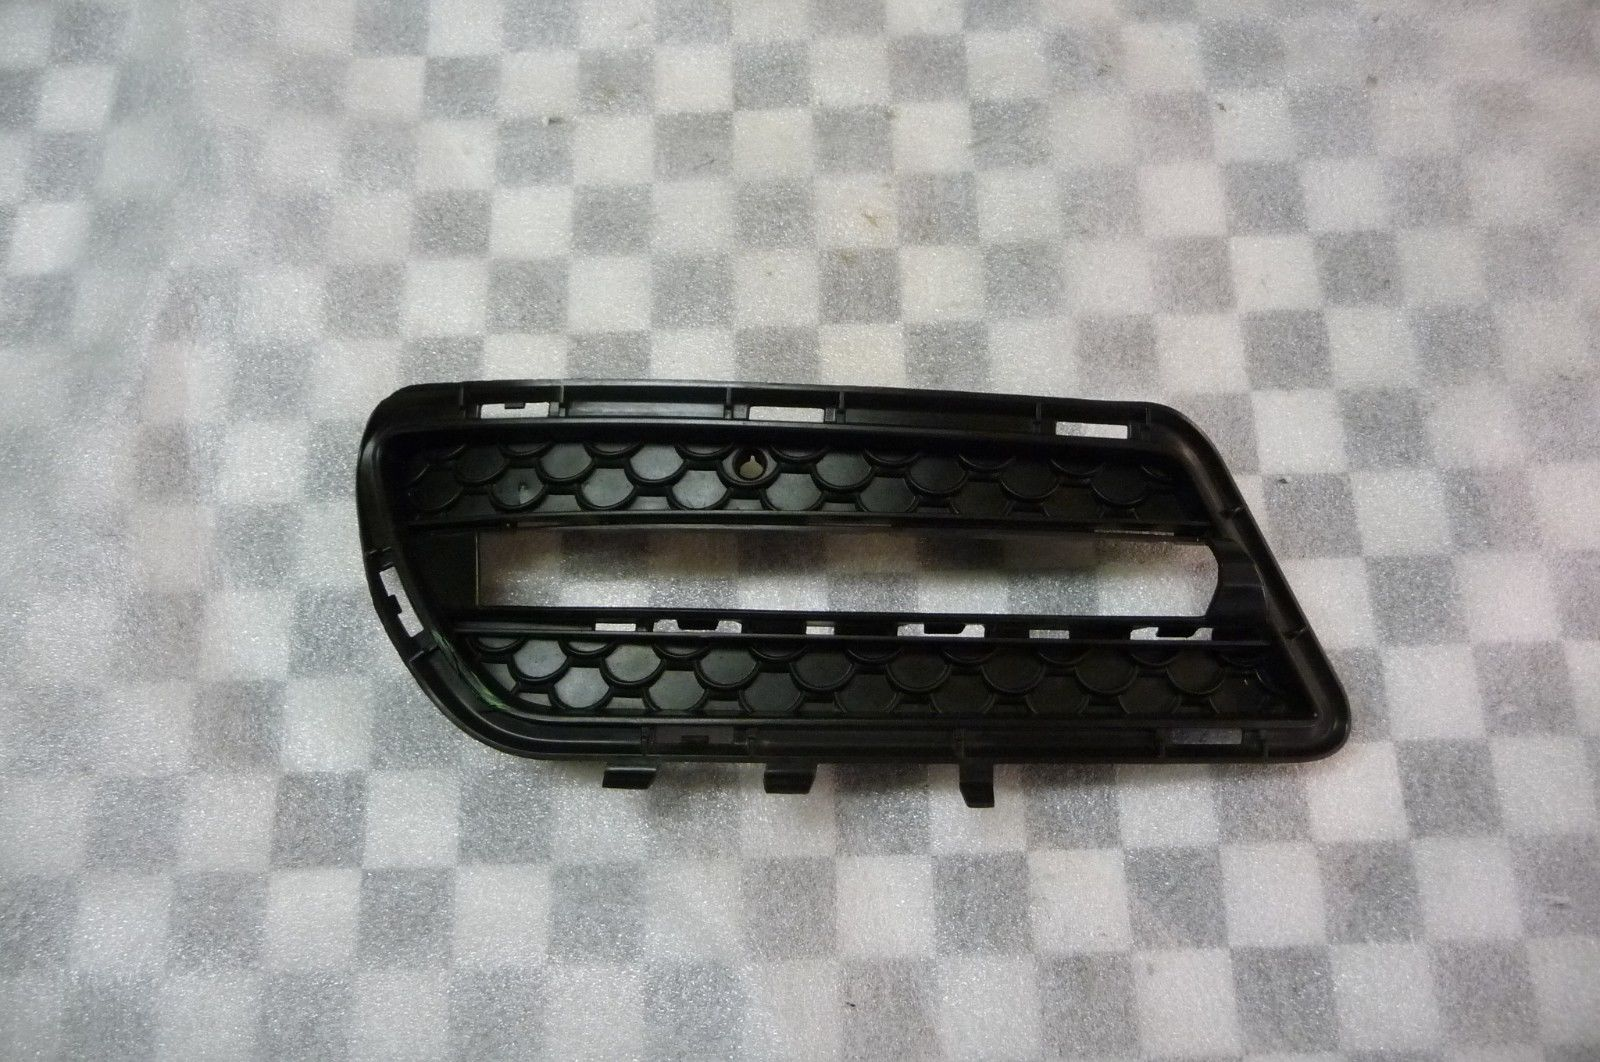 Mercedes Benz E Class Front Left Daytime Driving Light Frame Grill A 2128851753